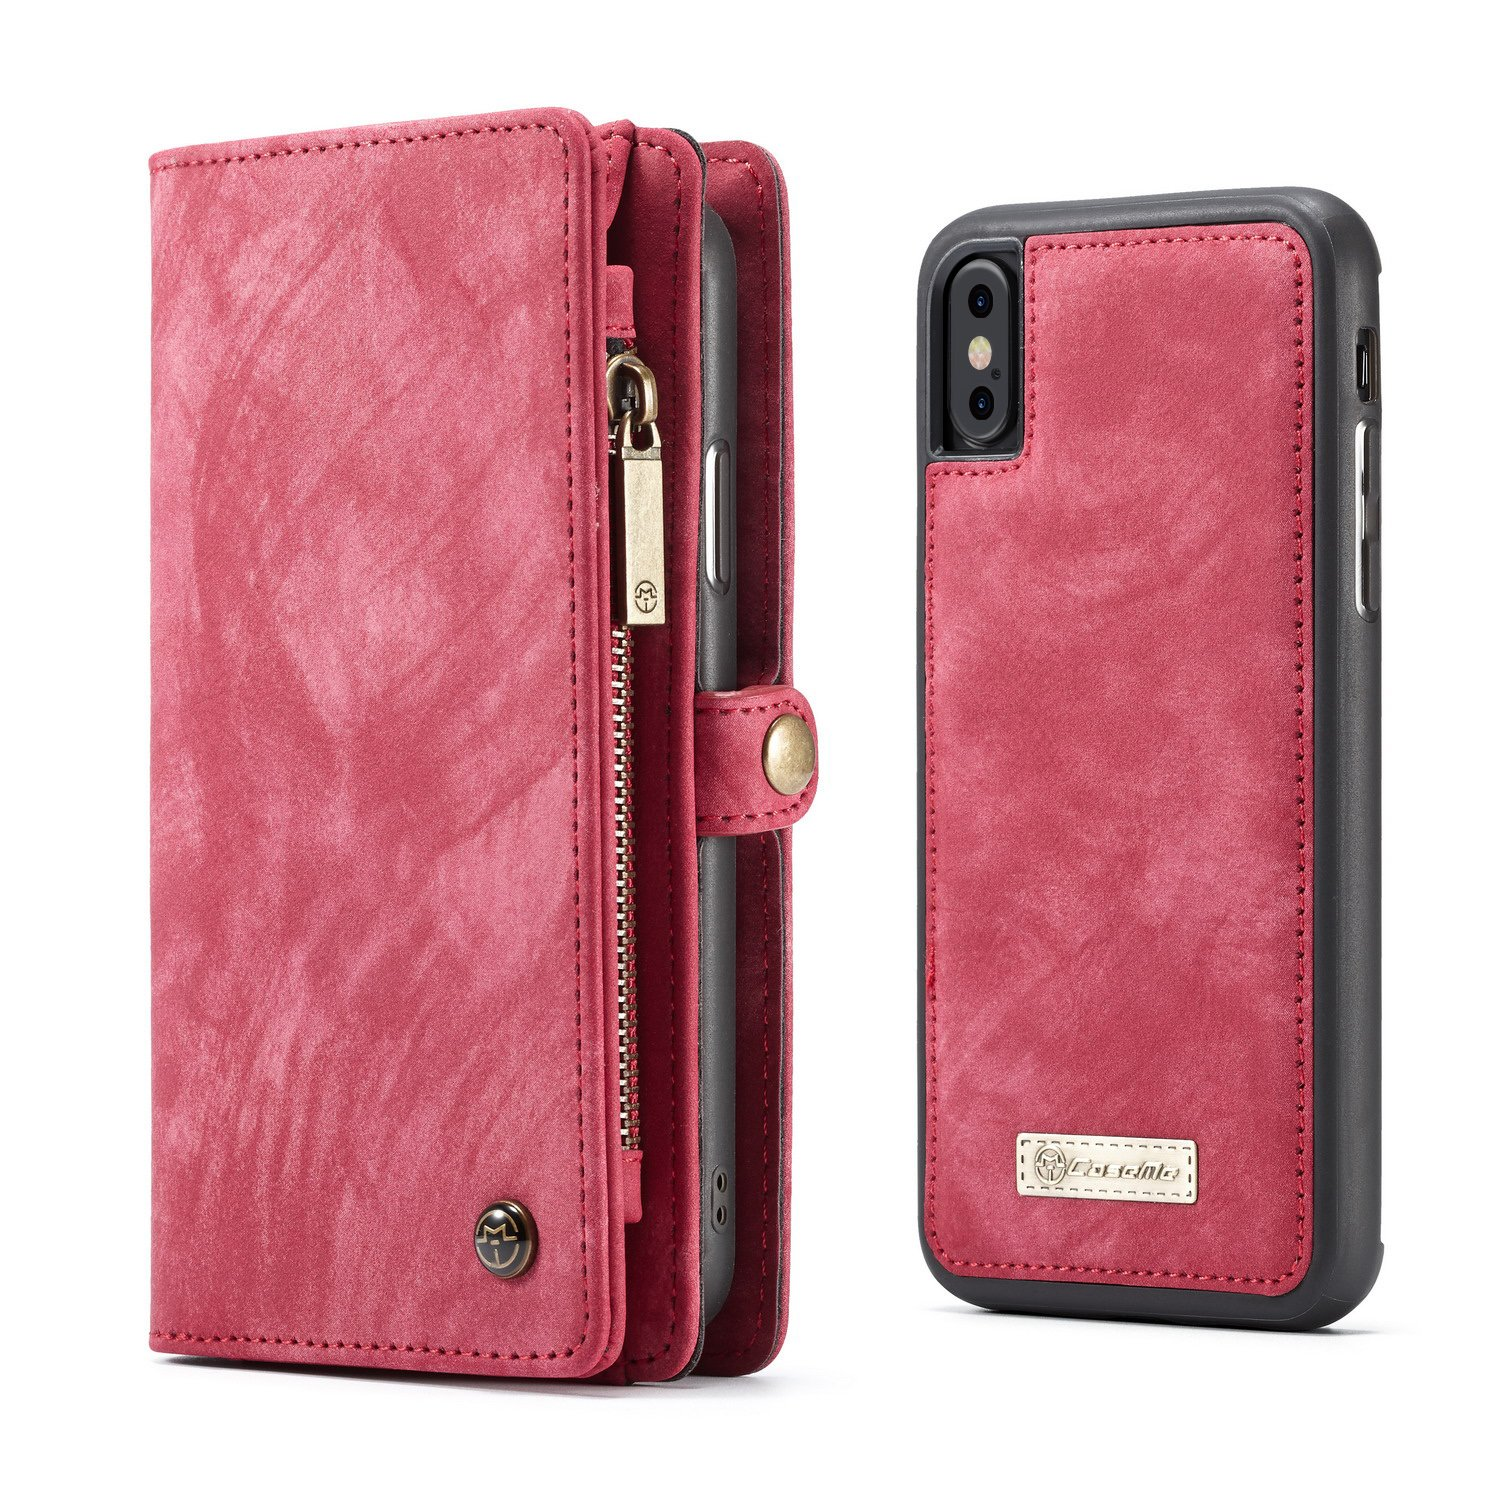 buy online 75718 cfed1 KONKY Caseme iPhone Xs Max Wallet Case, Magnetic Detachable Removable Phone  Cover Pouch Folio Durable Leather Purse Flip Card Pockets Case Holder Bag  ...